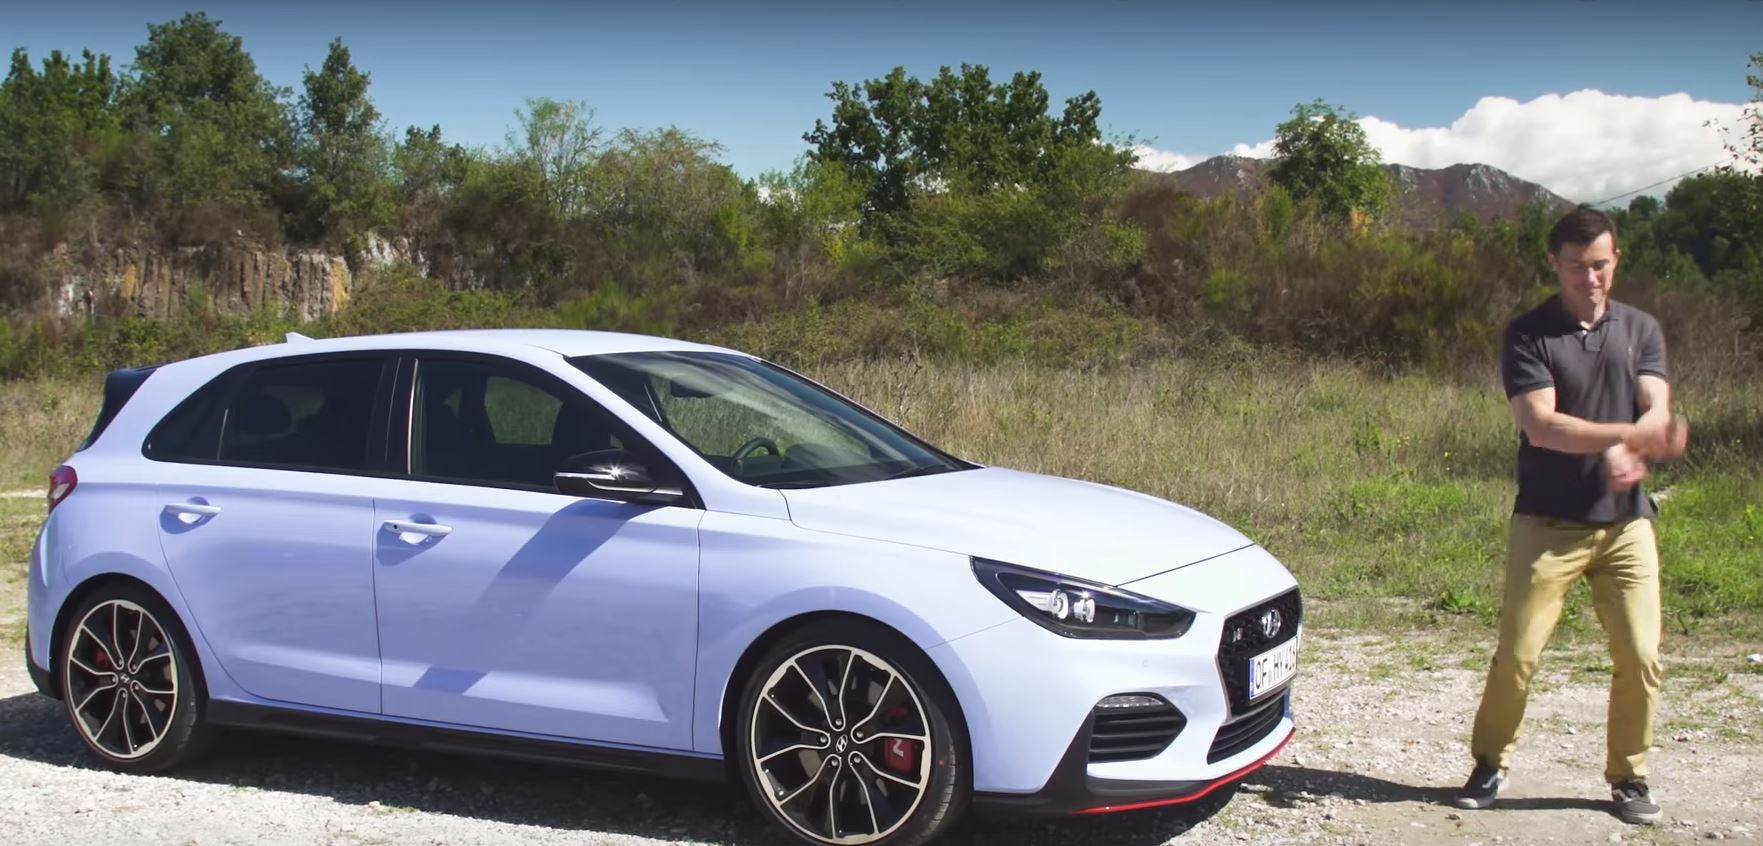 I30 N Interieur First Hyundai I30 N Review Includes Gangnam Style Dance